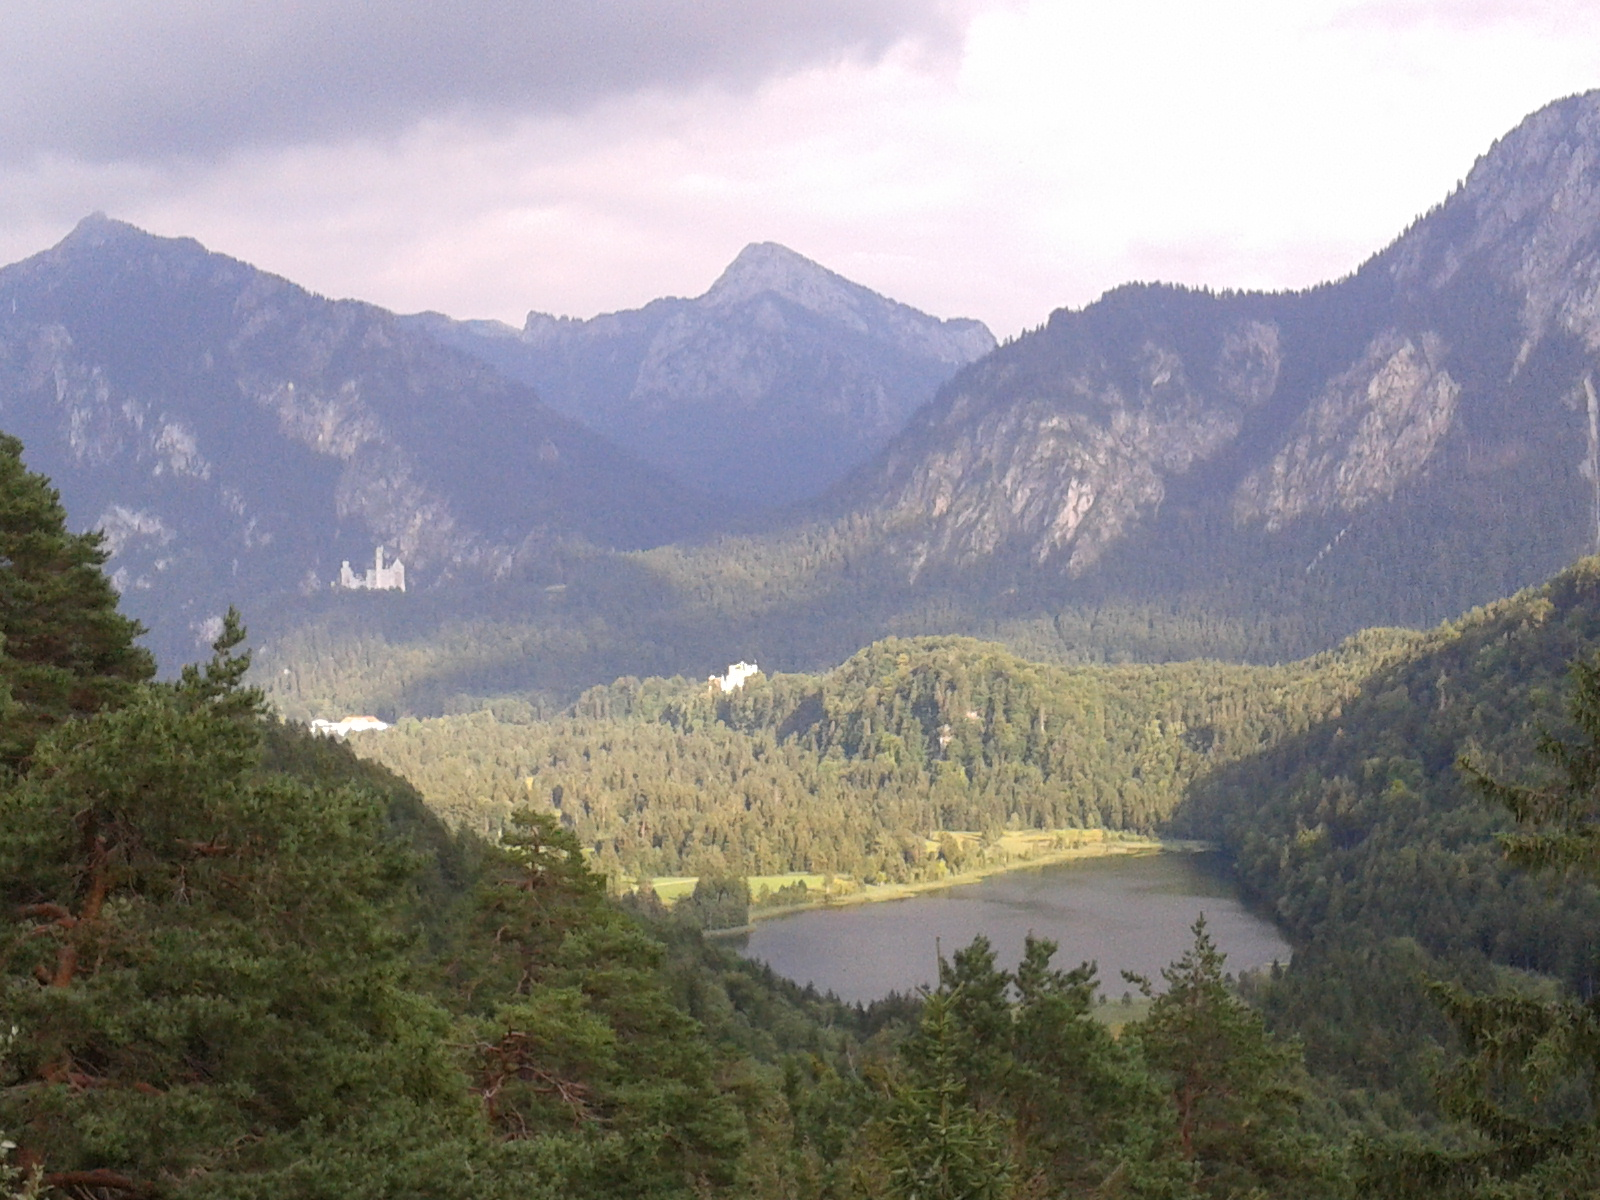 another view of Alpsee and Neuschwanstein